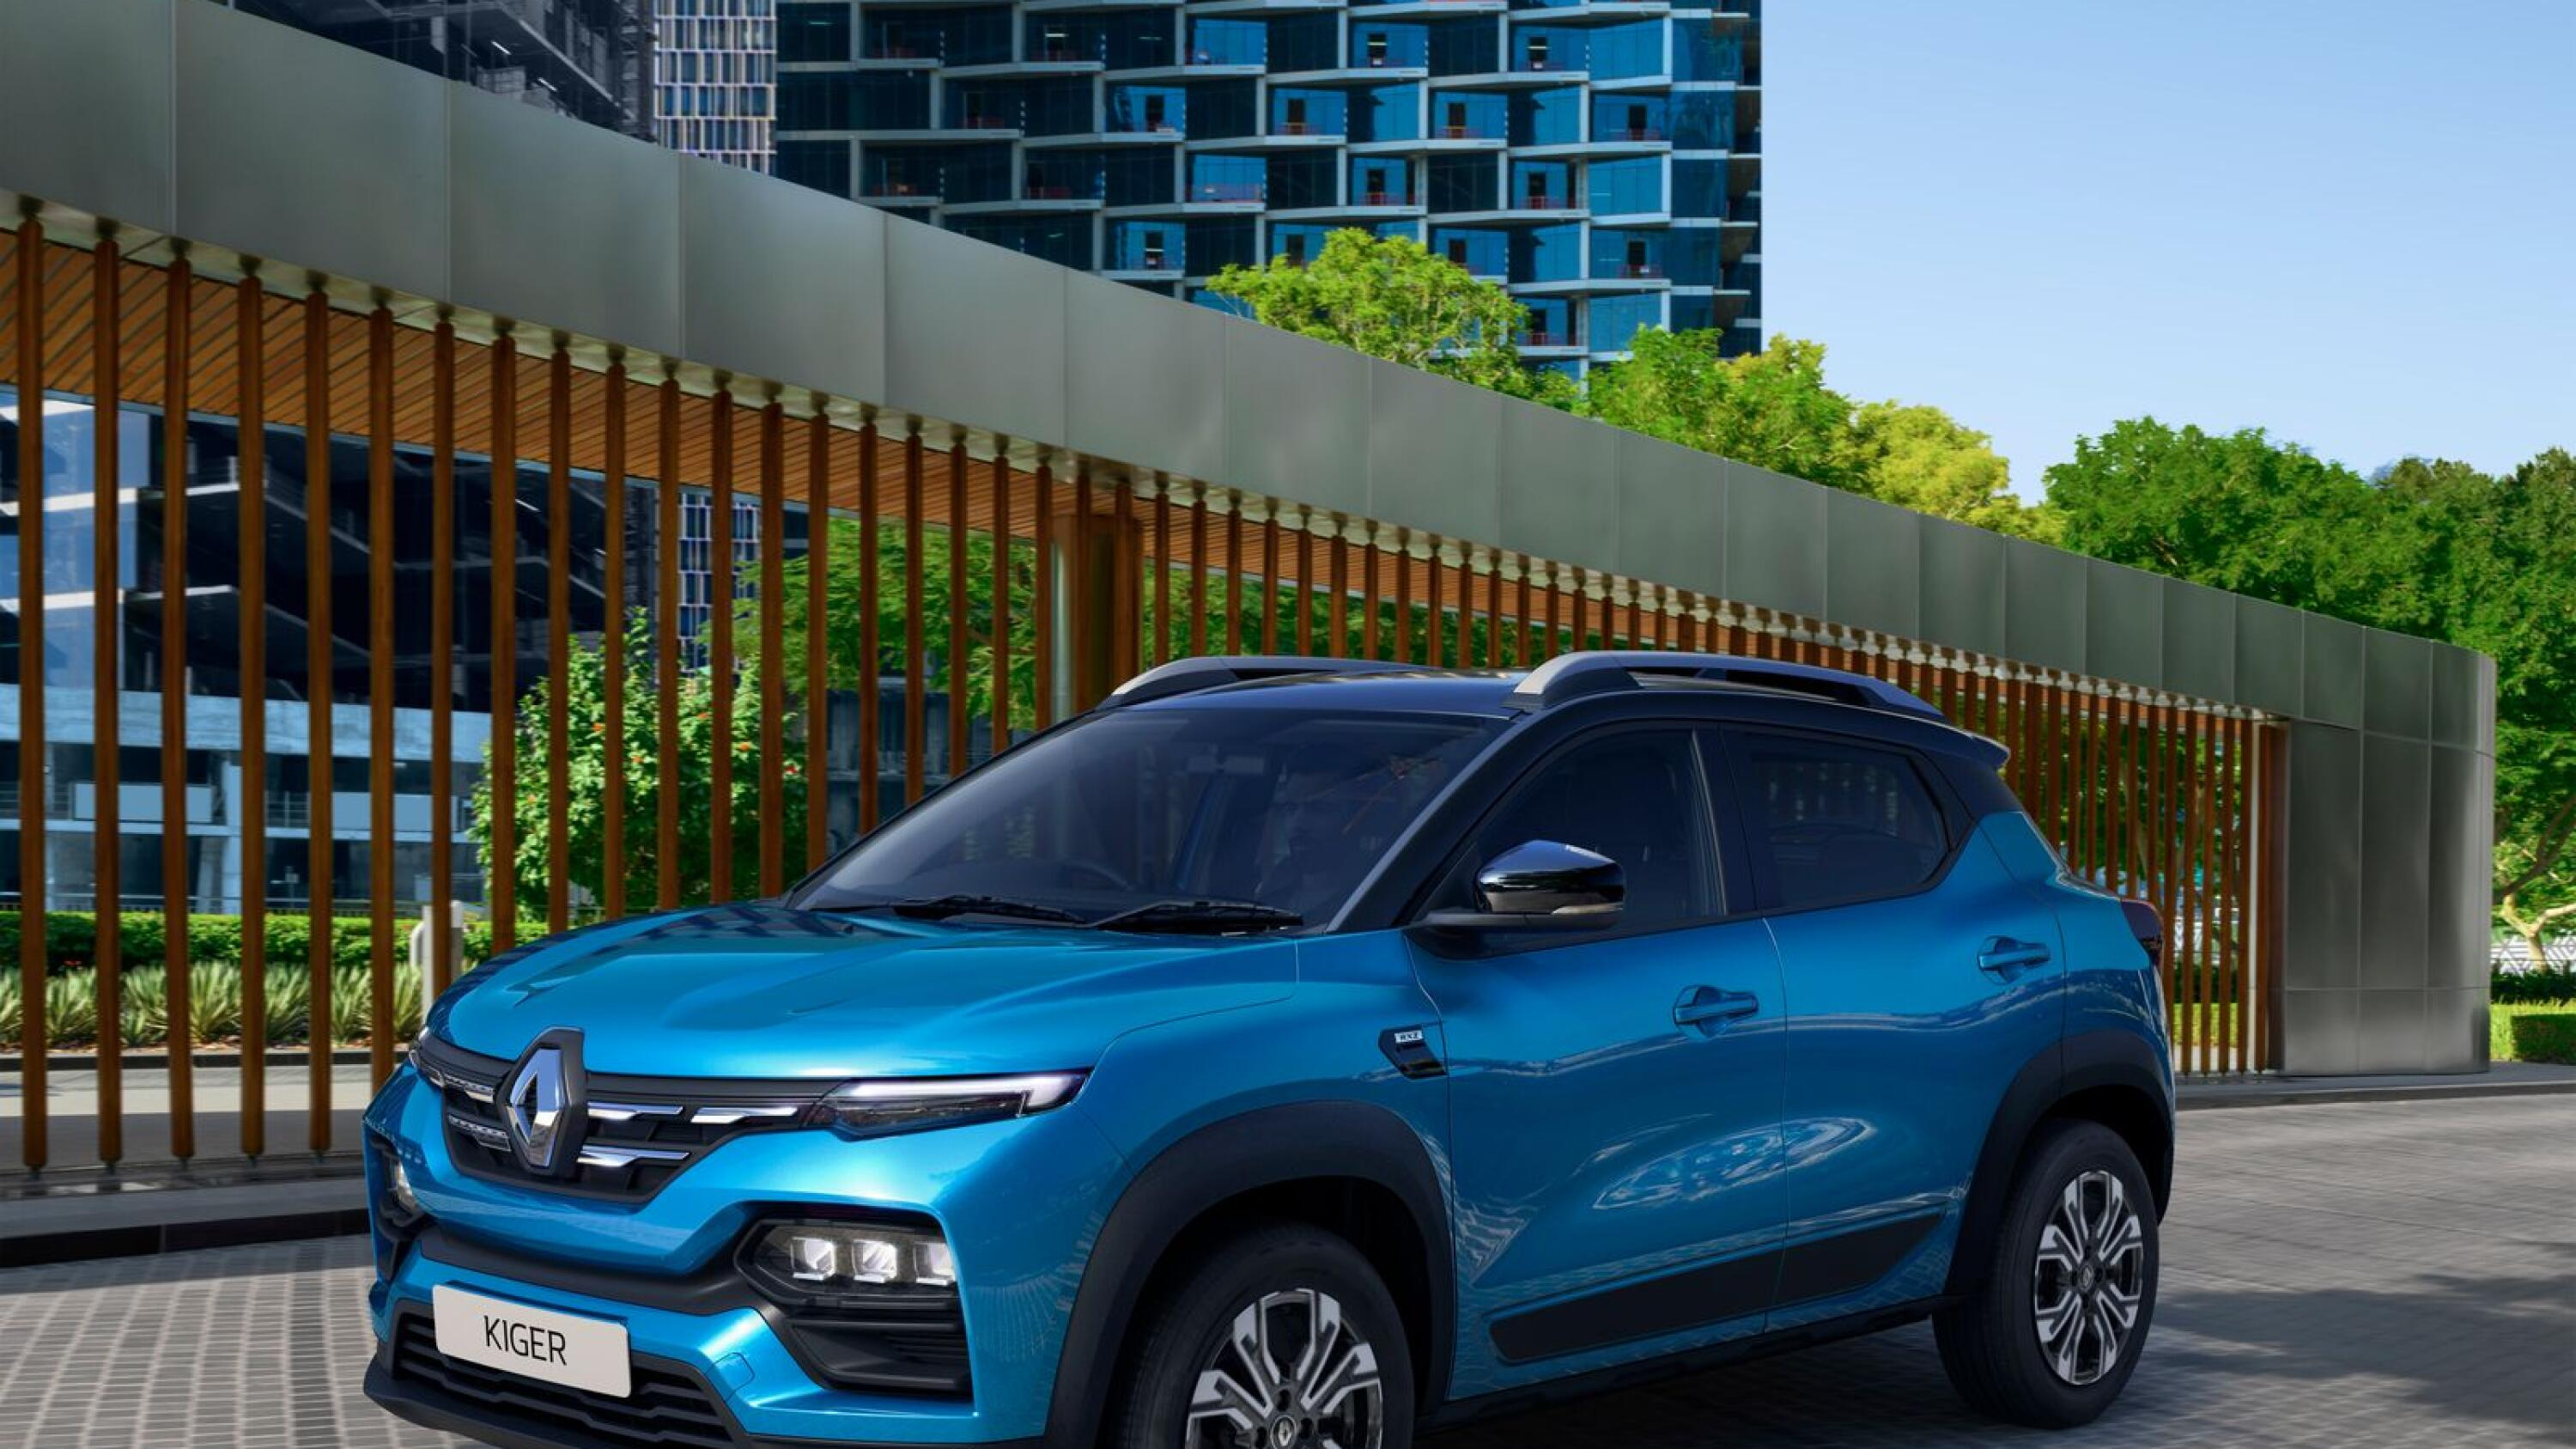 2021 Renault Kiger compact crossover launches in South Africa in the third quarter